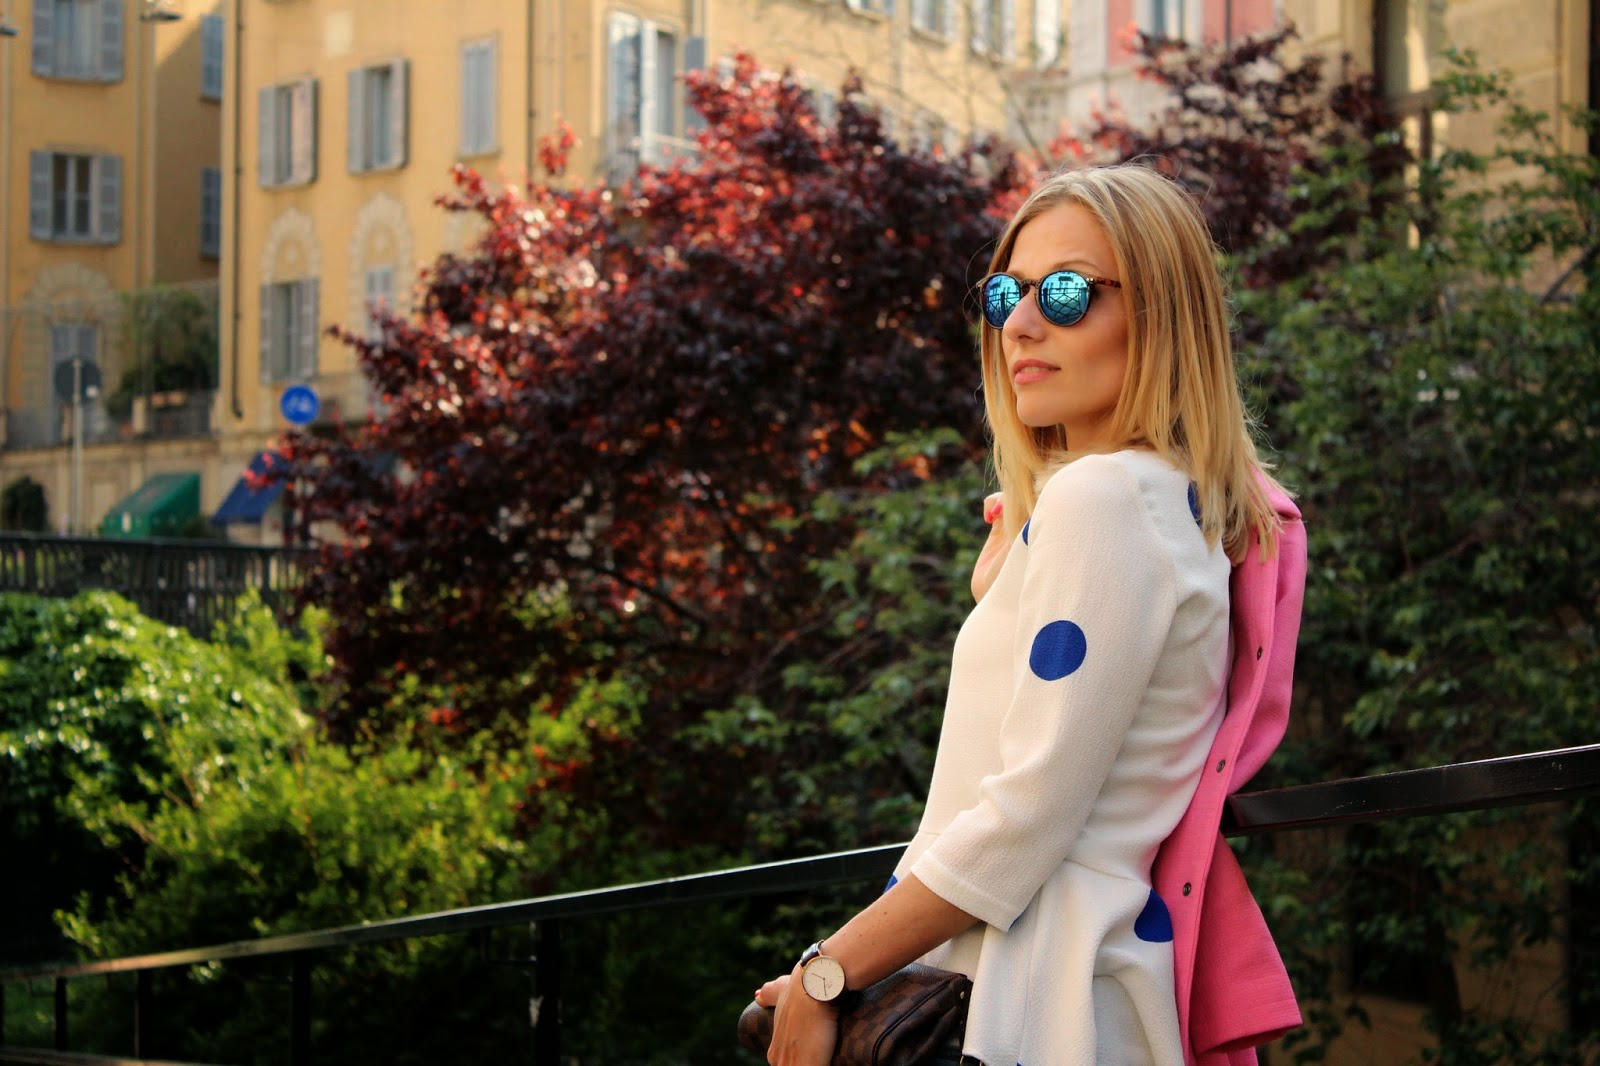 Eniwhere Fashion - Fuorisalone outfit - Total Zara ootd